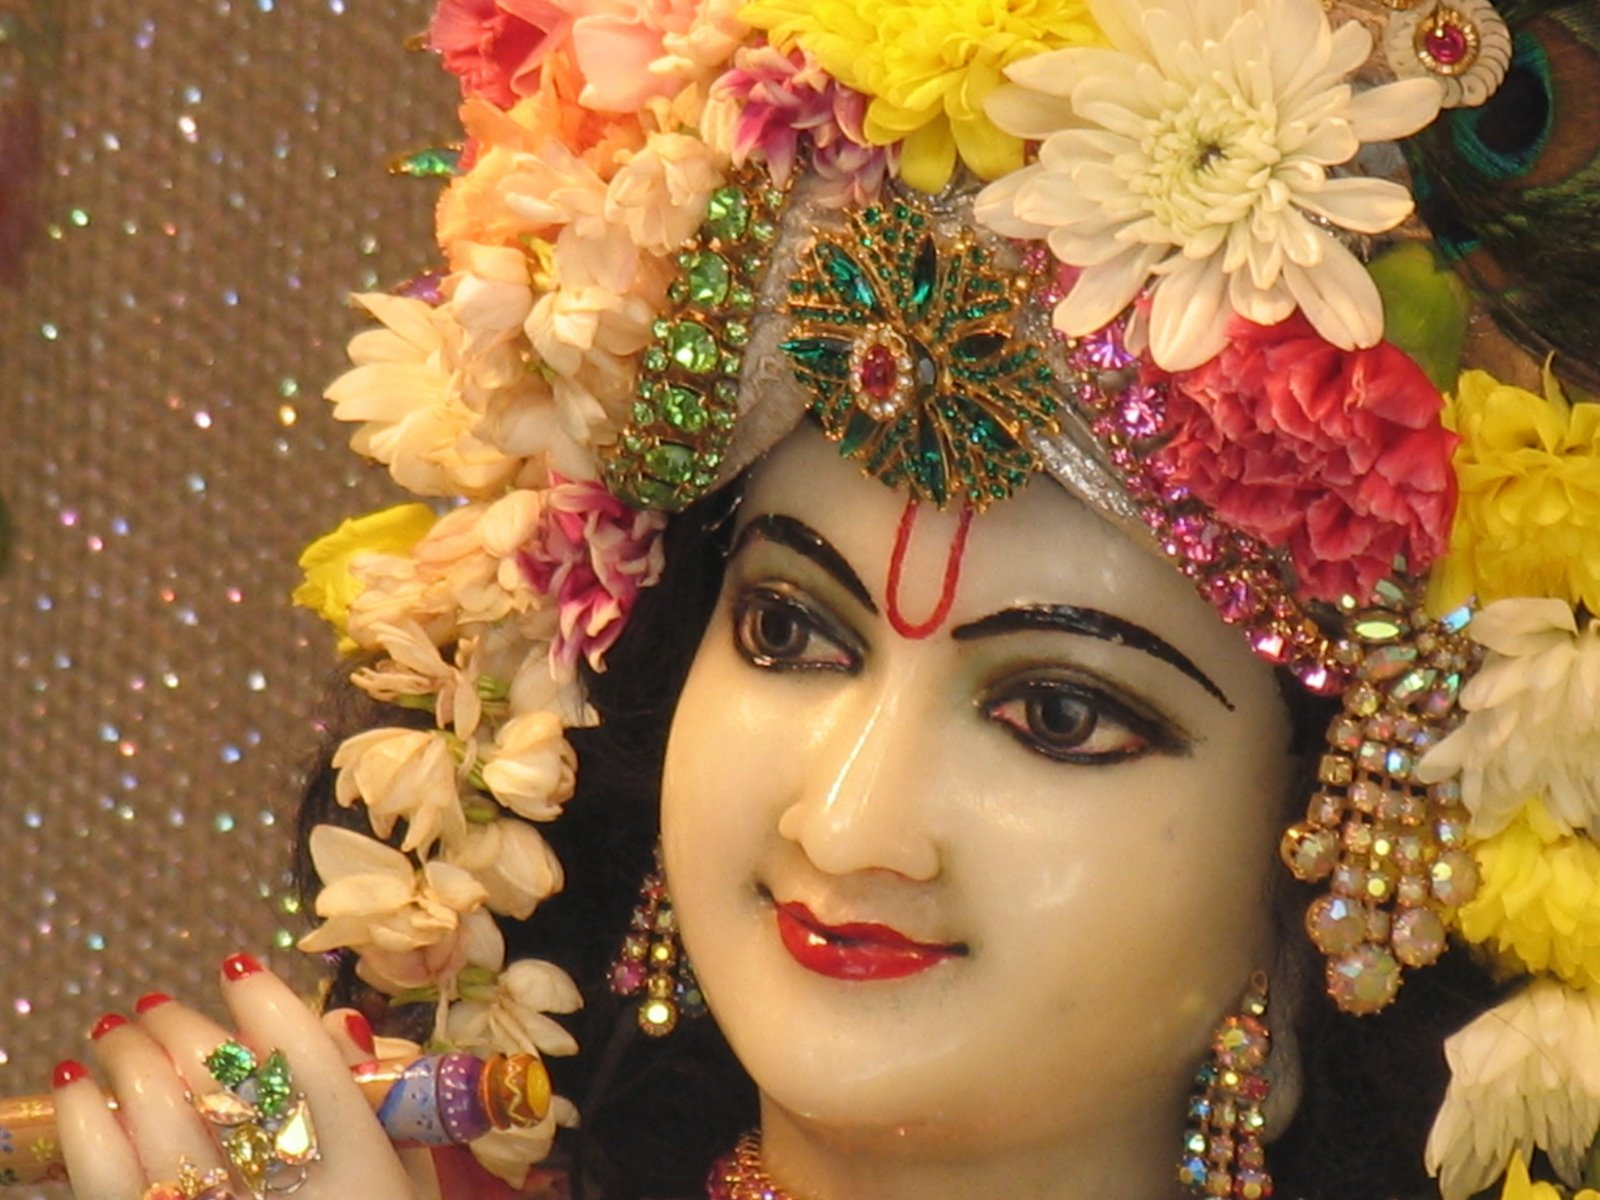 Desktop Wallpapers: Bhagwaan Shree Krishna